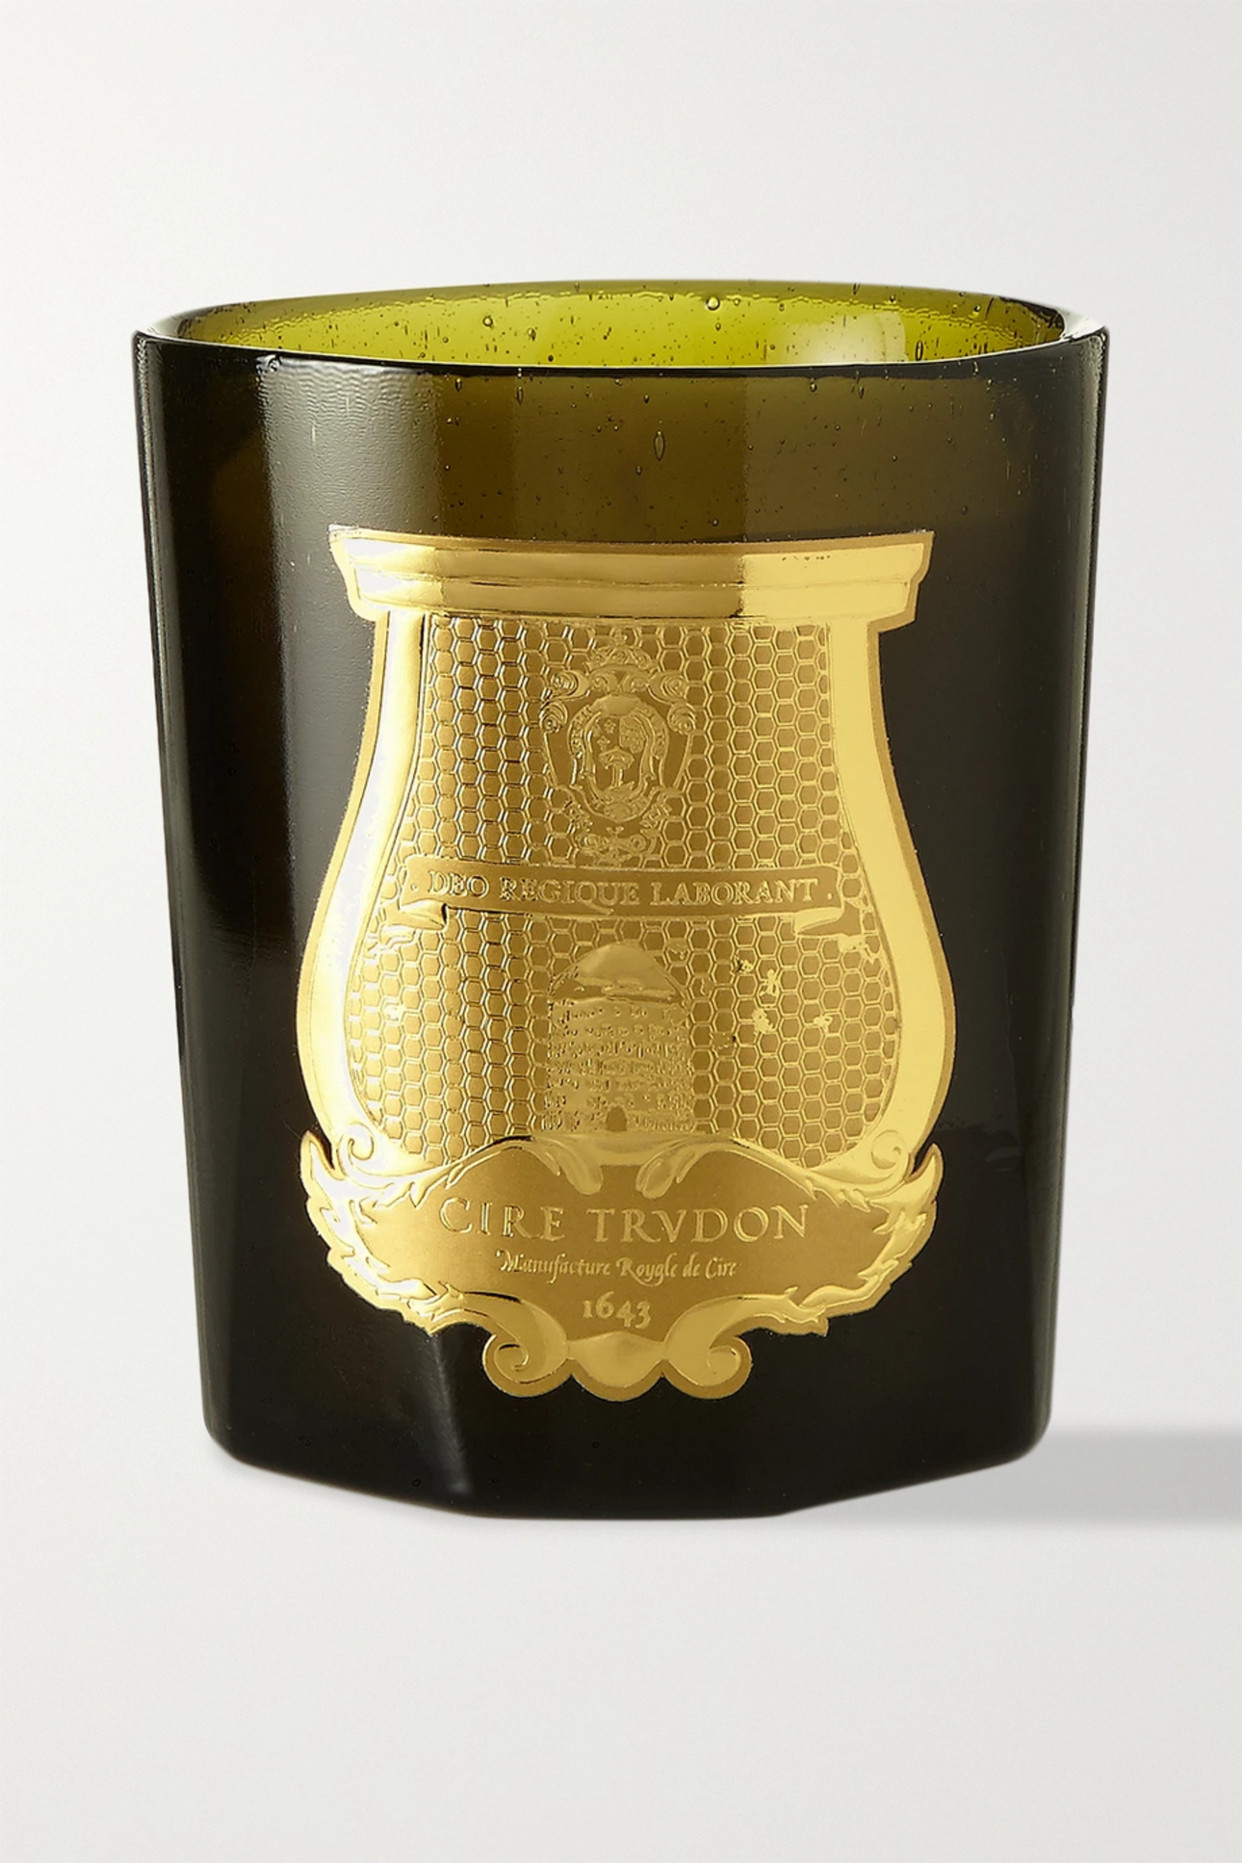 CIRE TRUDON - Spiritus Sancti Scented Candle, 270g - Green - one size